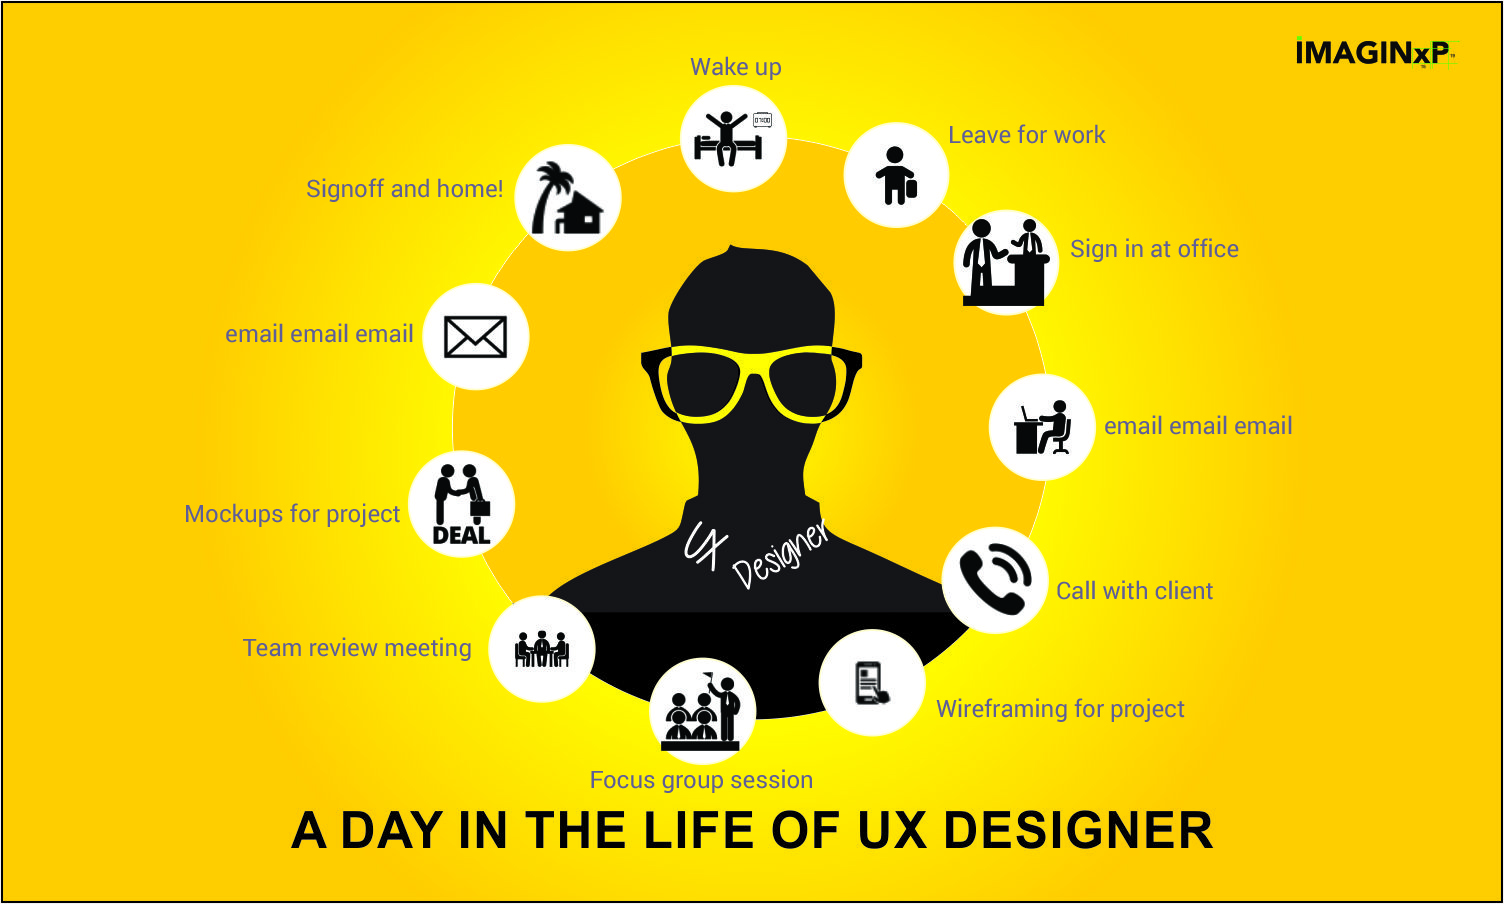 imaginxp: a day in the life of ux designer -imaginxp